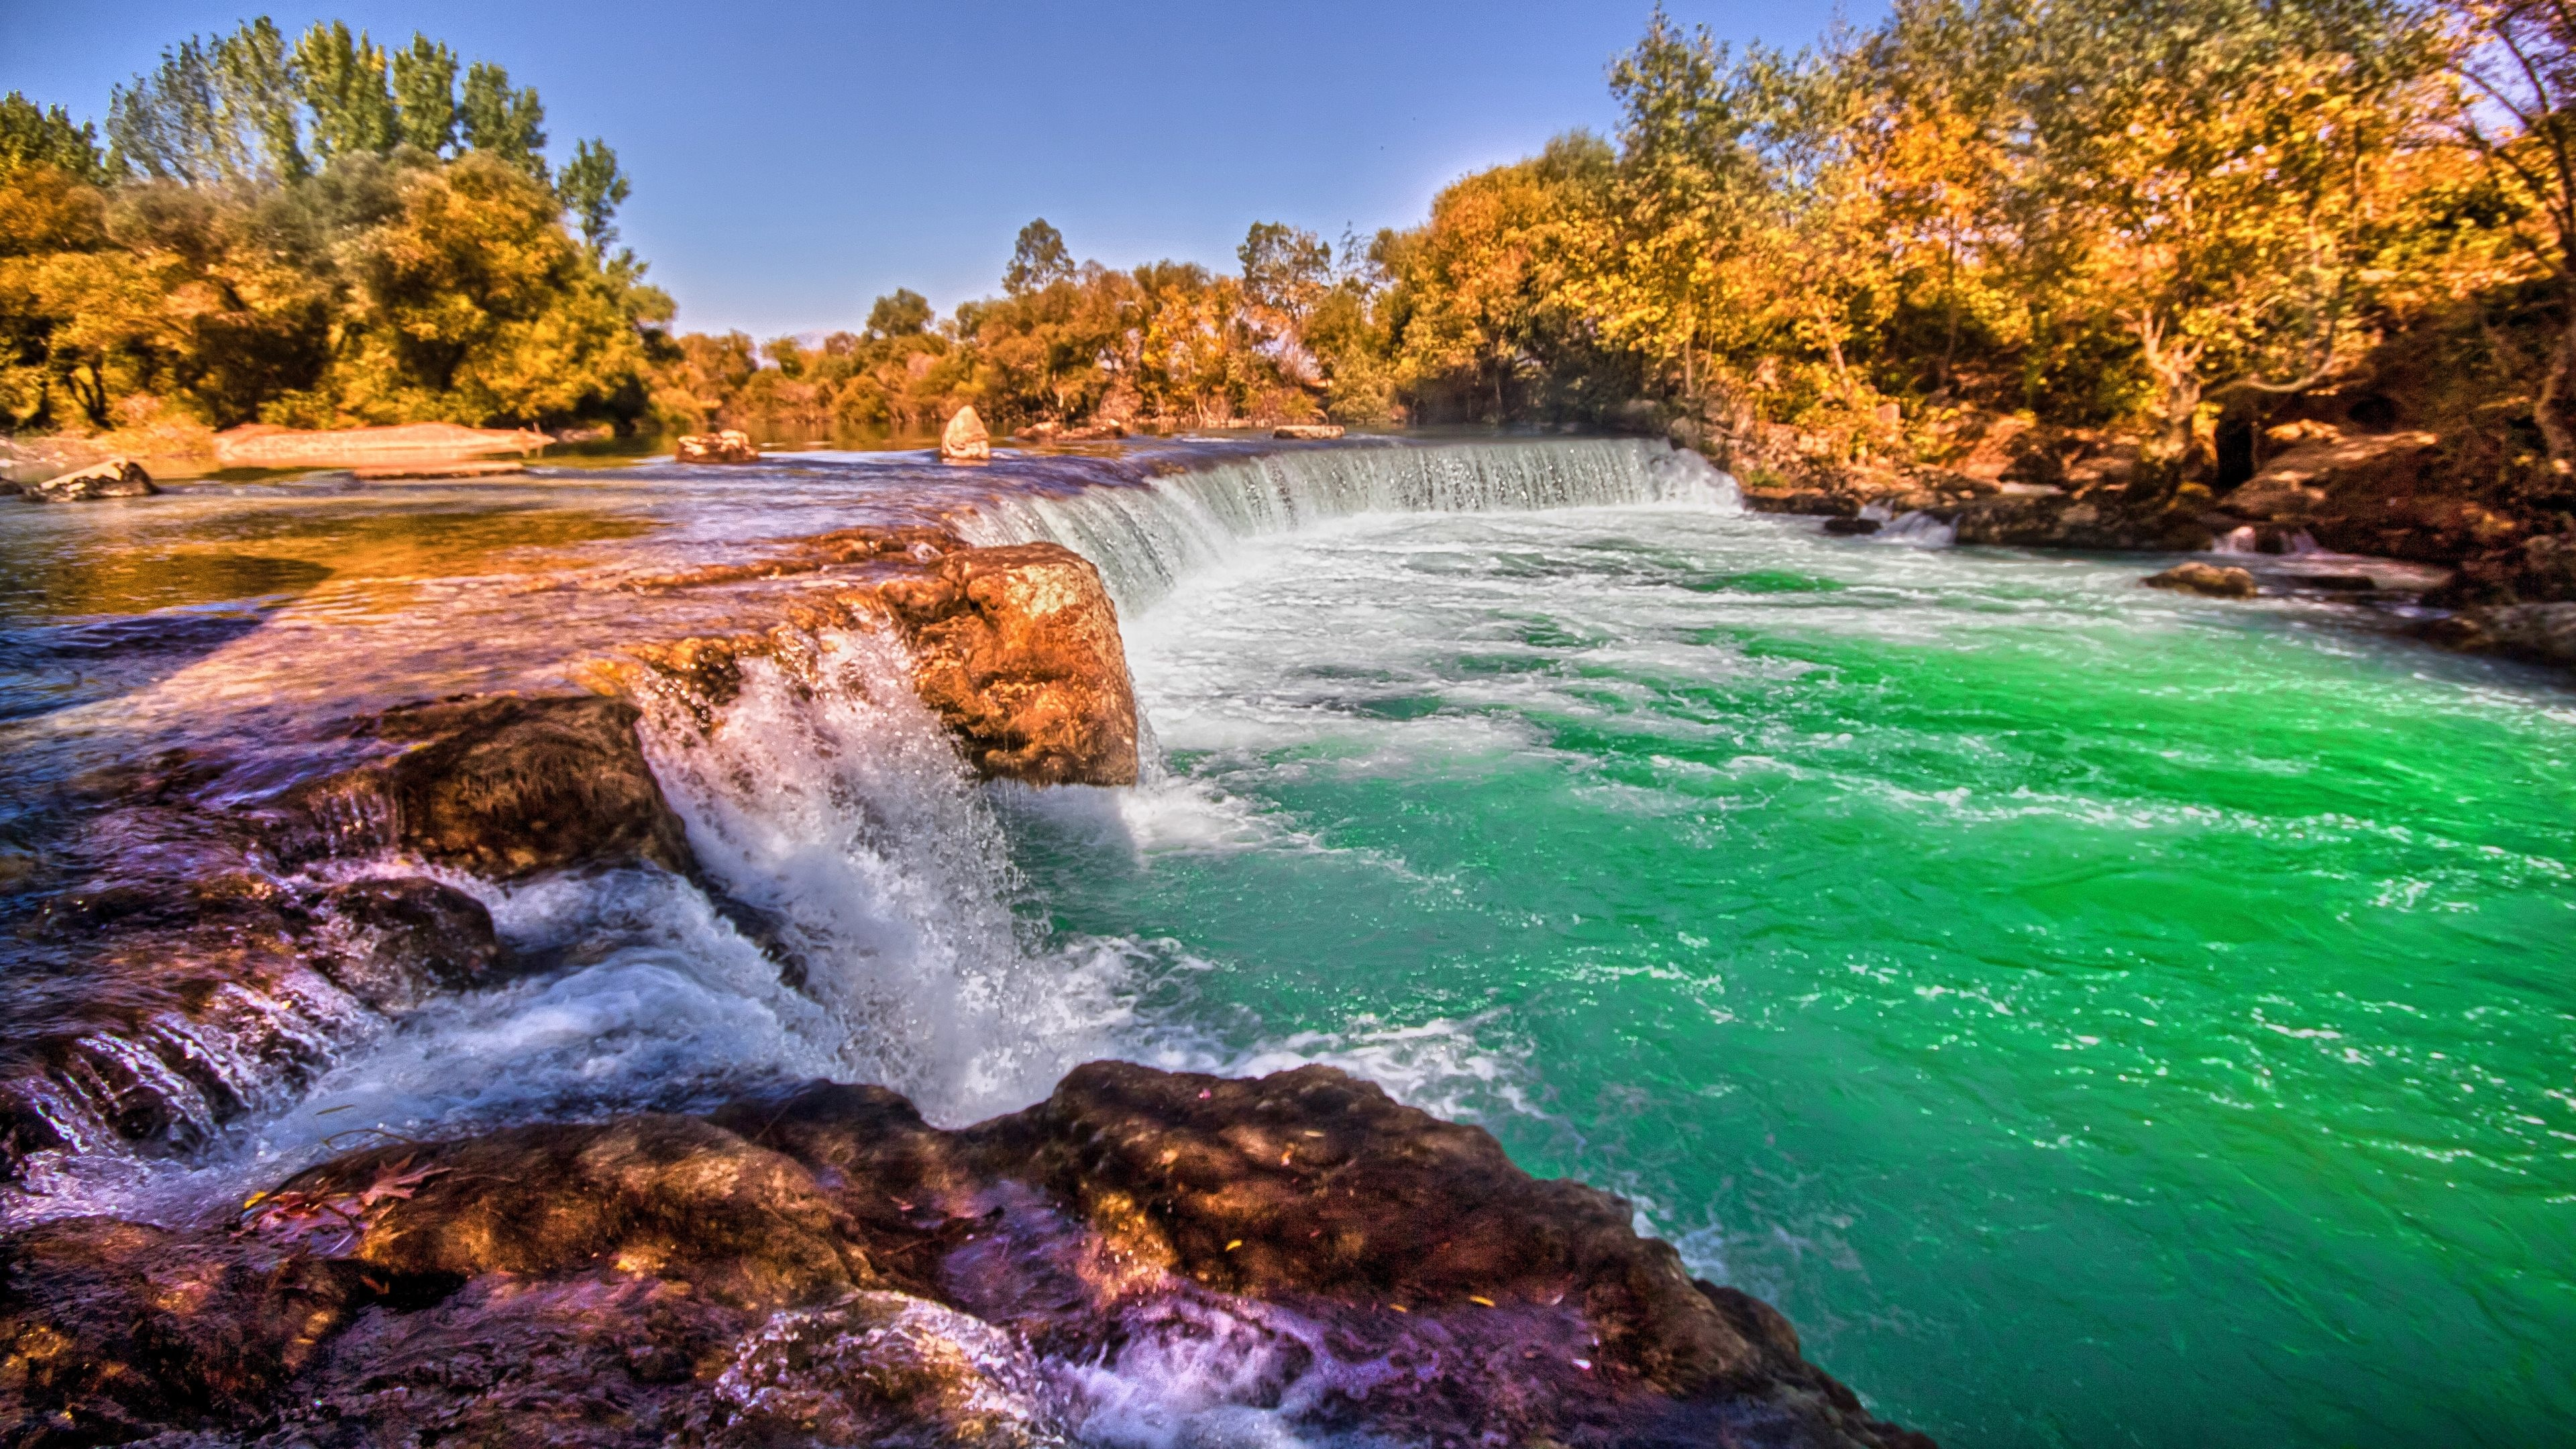 4k ultra hd nature wallpapers,body of water,natural landscape,water resources,nature,water